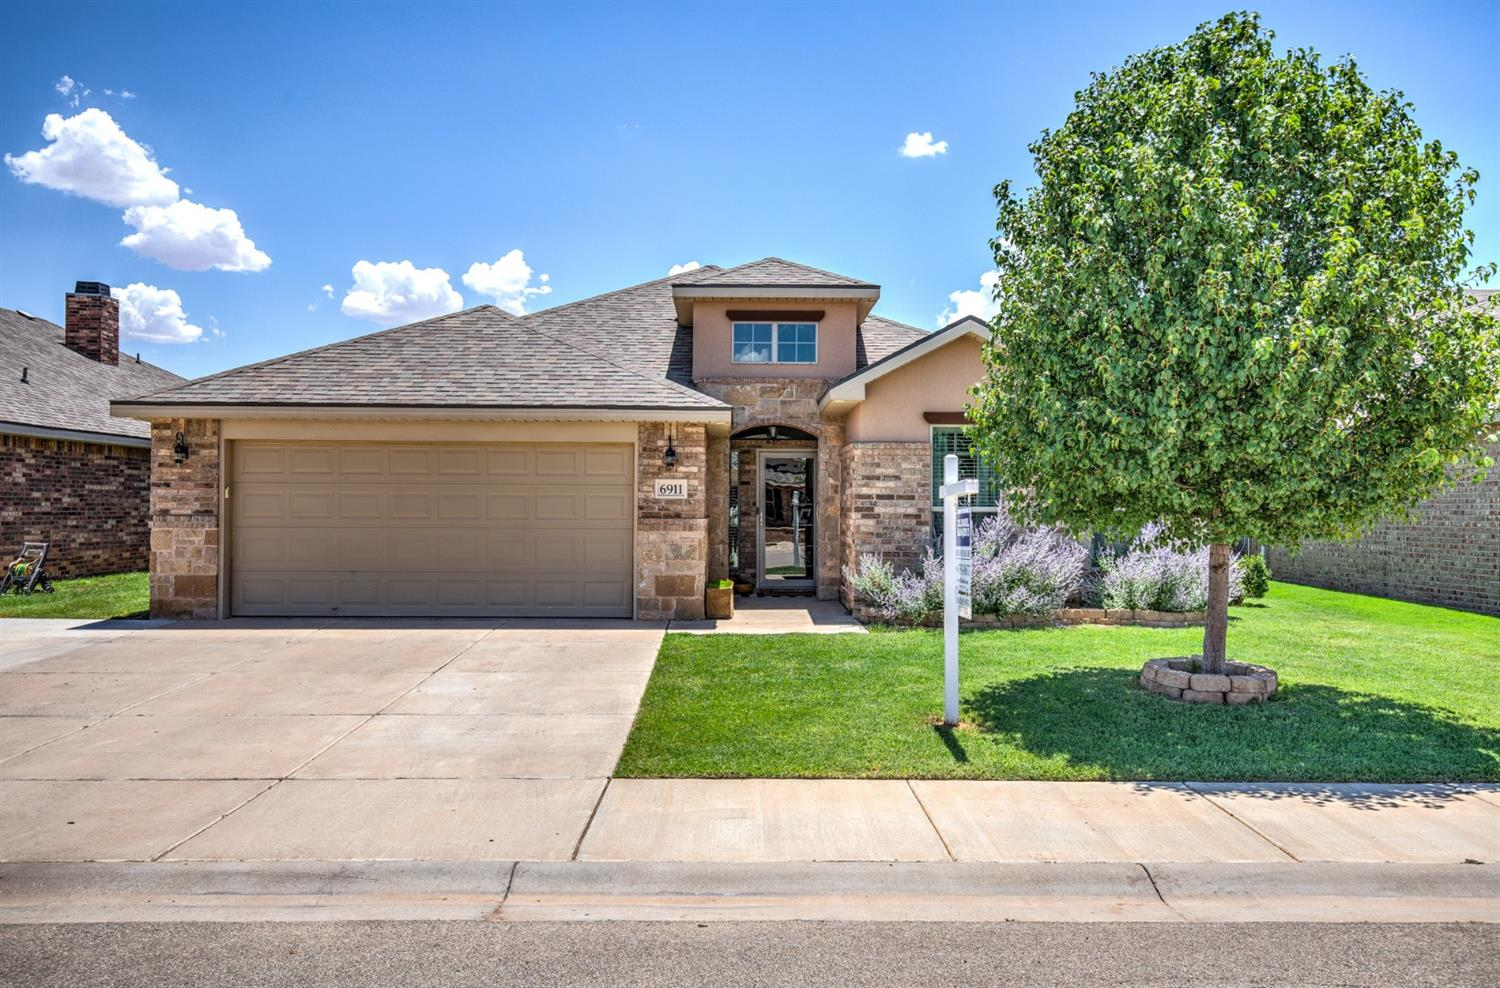 6911 91st, Lubbock in Lubbock County, TX 79424 Home for Sale